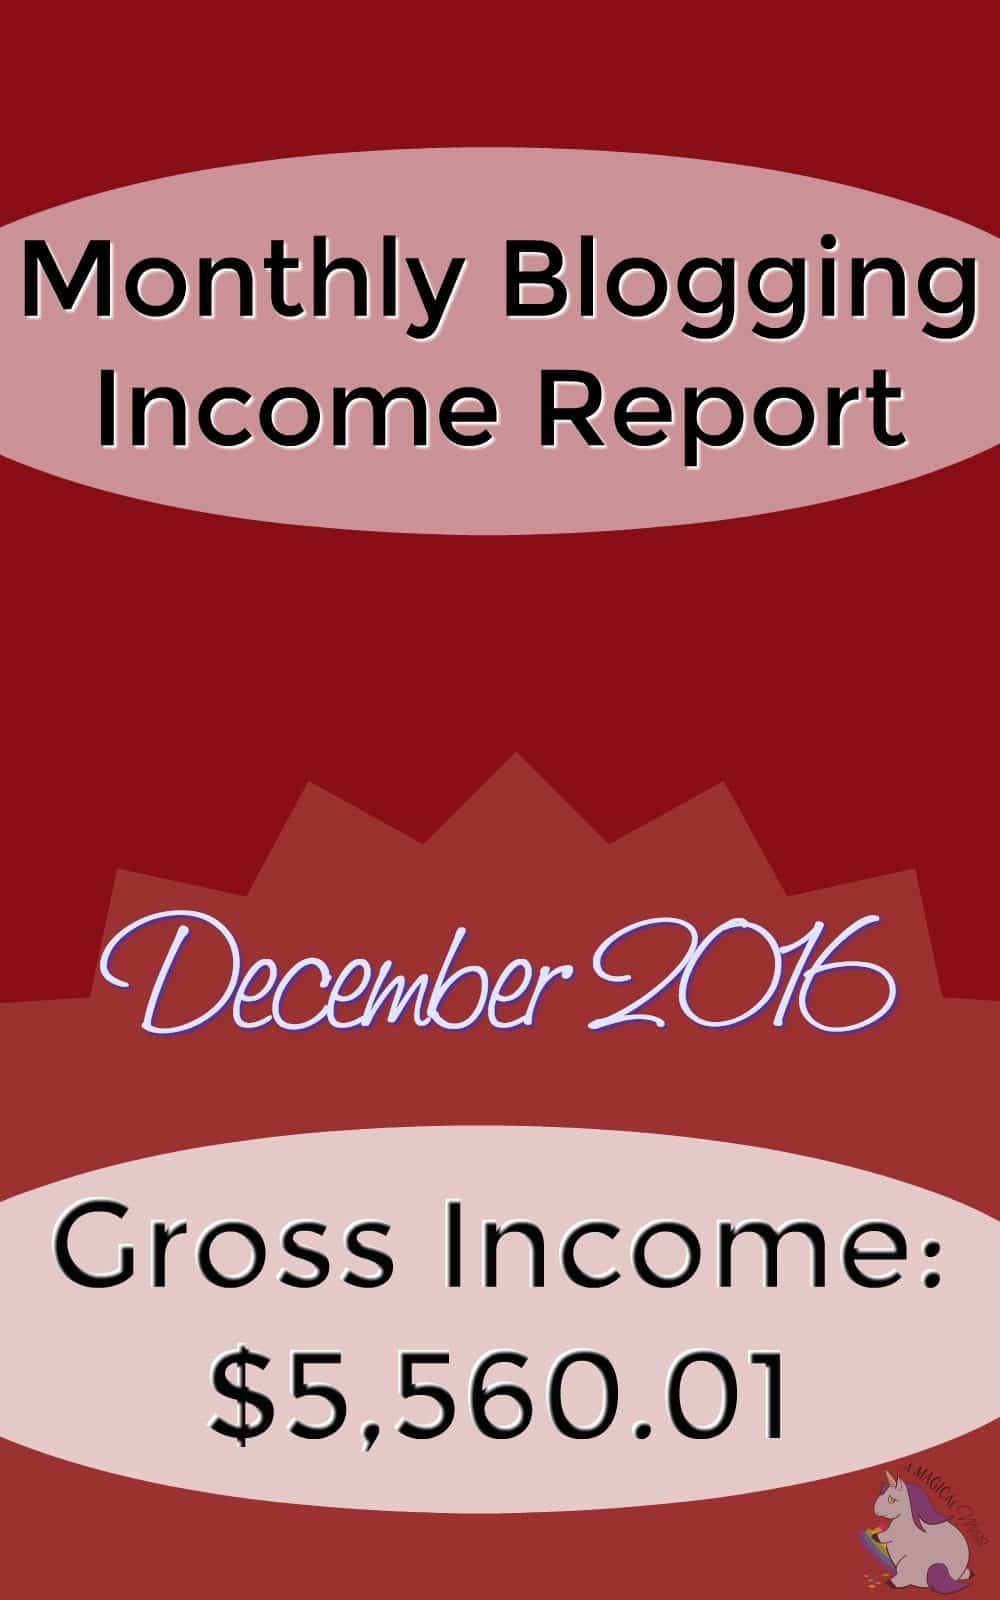 Monthly Blog Income Report - December 2016